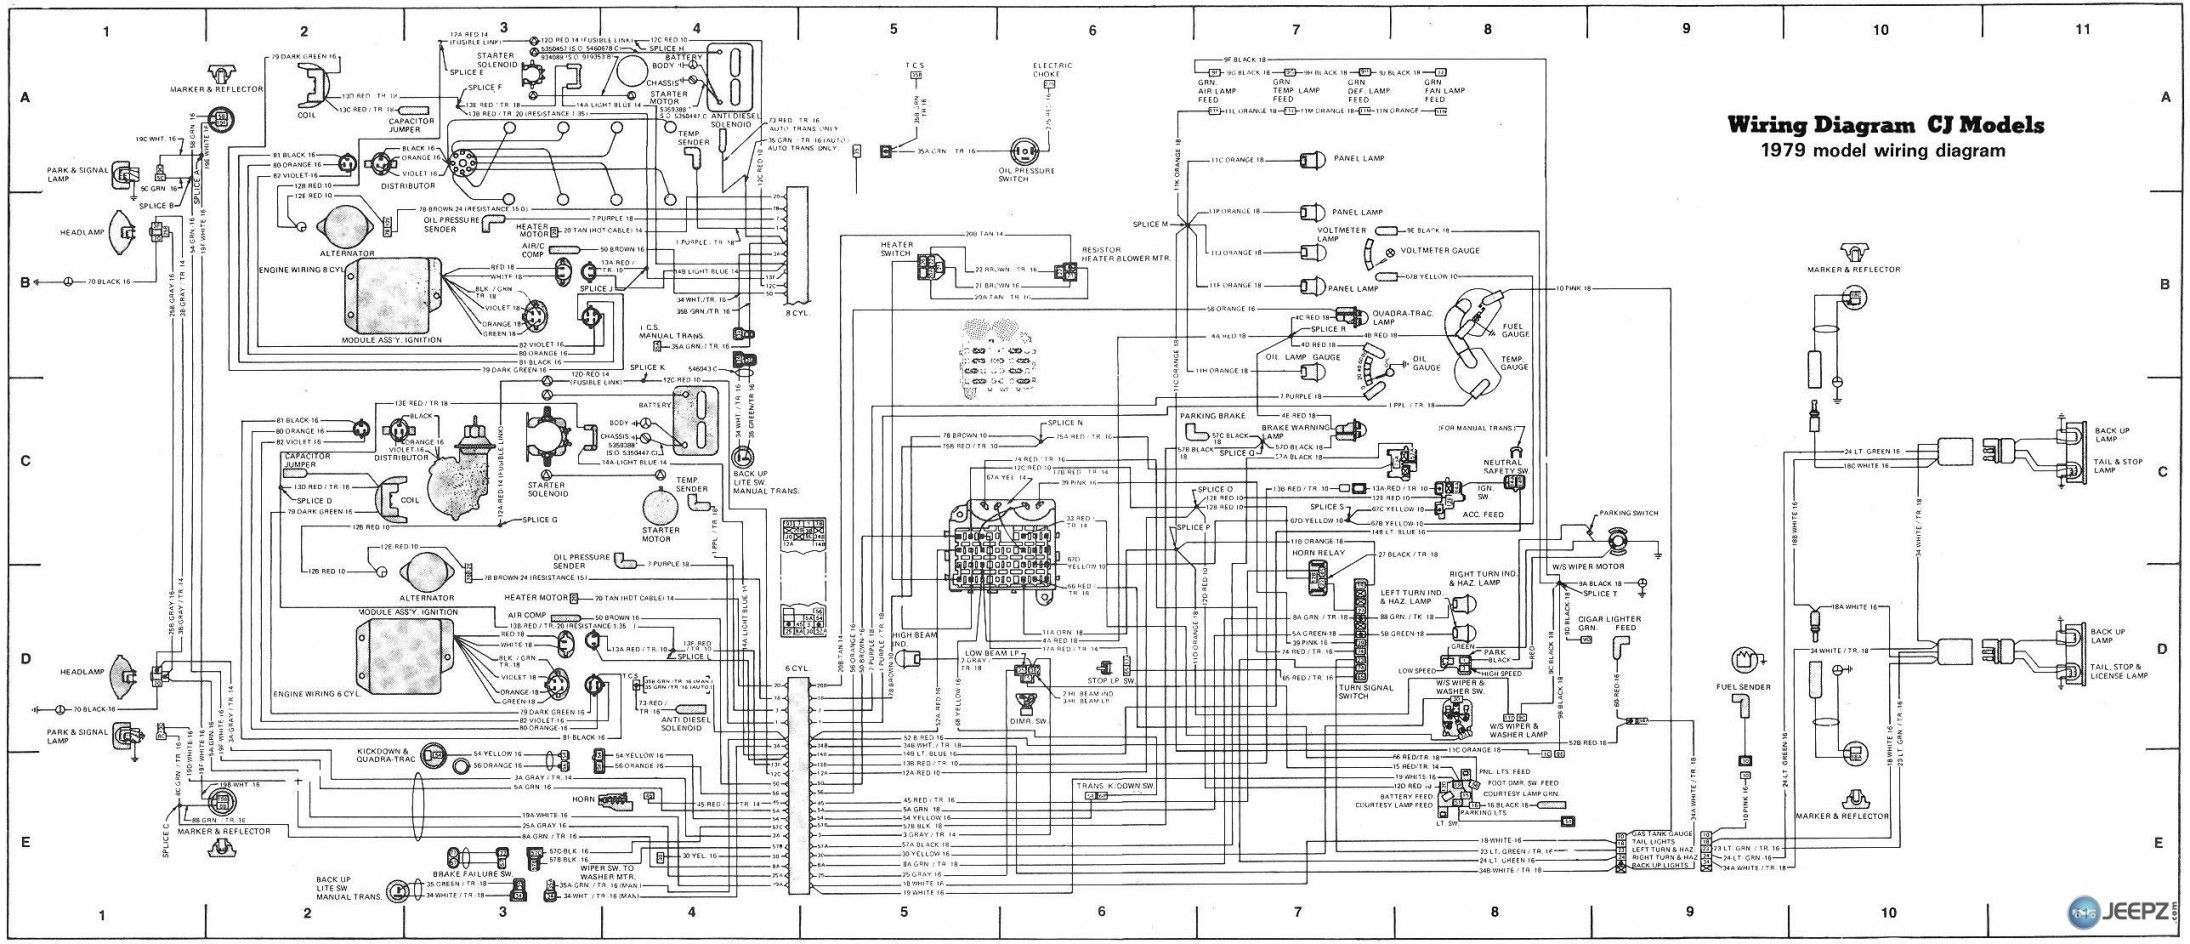 Fuse Panel Diagram Cj8 Internal Wiring Diagrams Ls430 Cj 7 Schematics 2001 Mustang Box